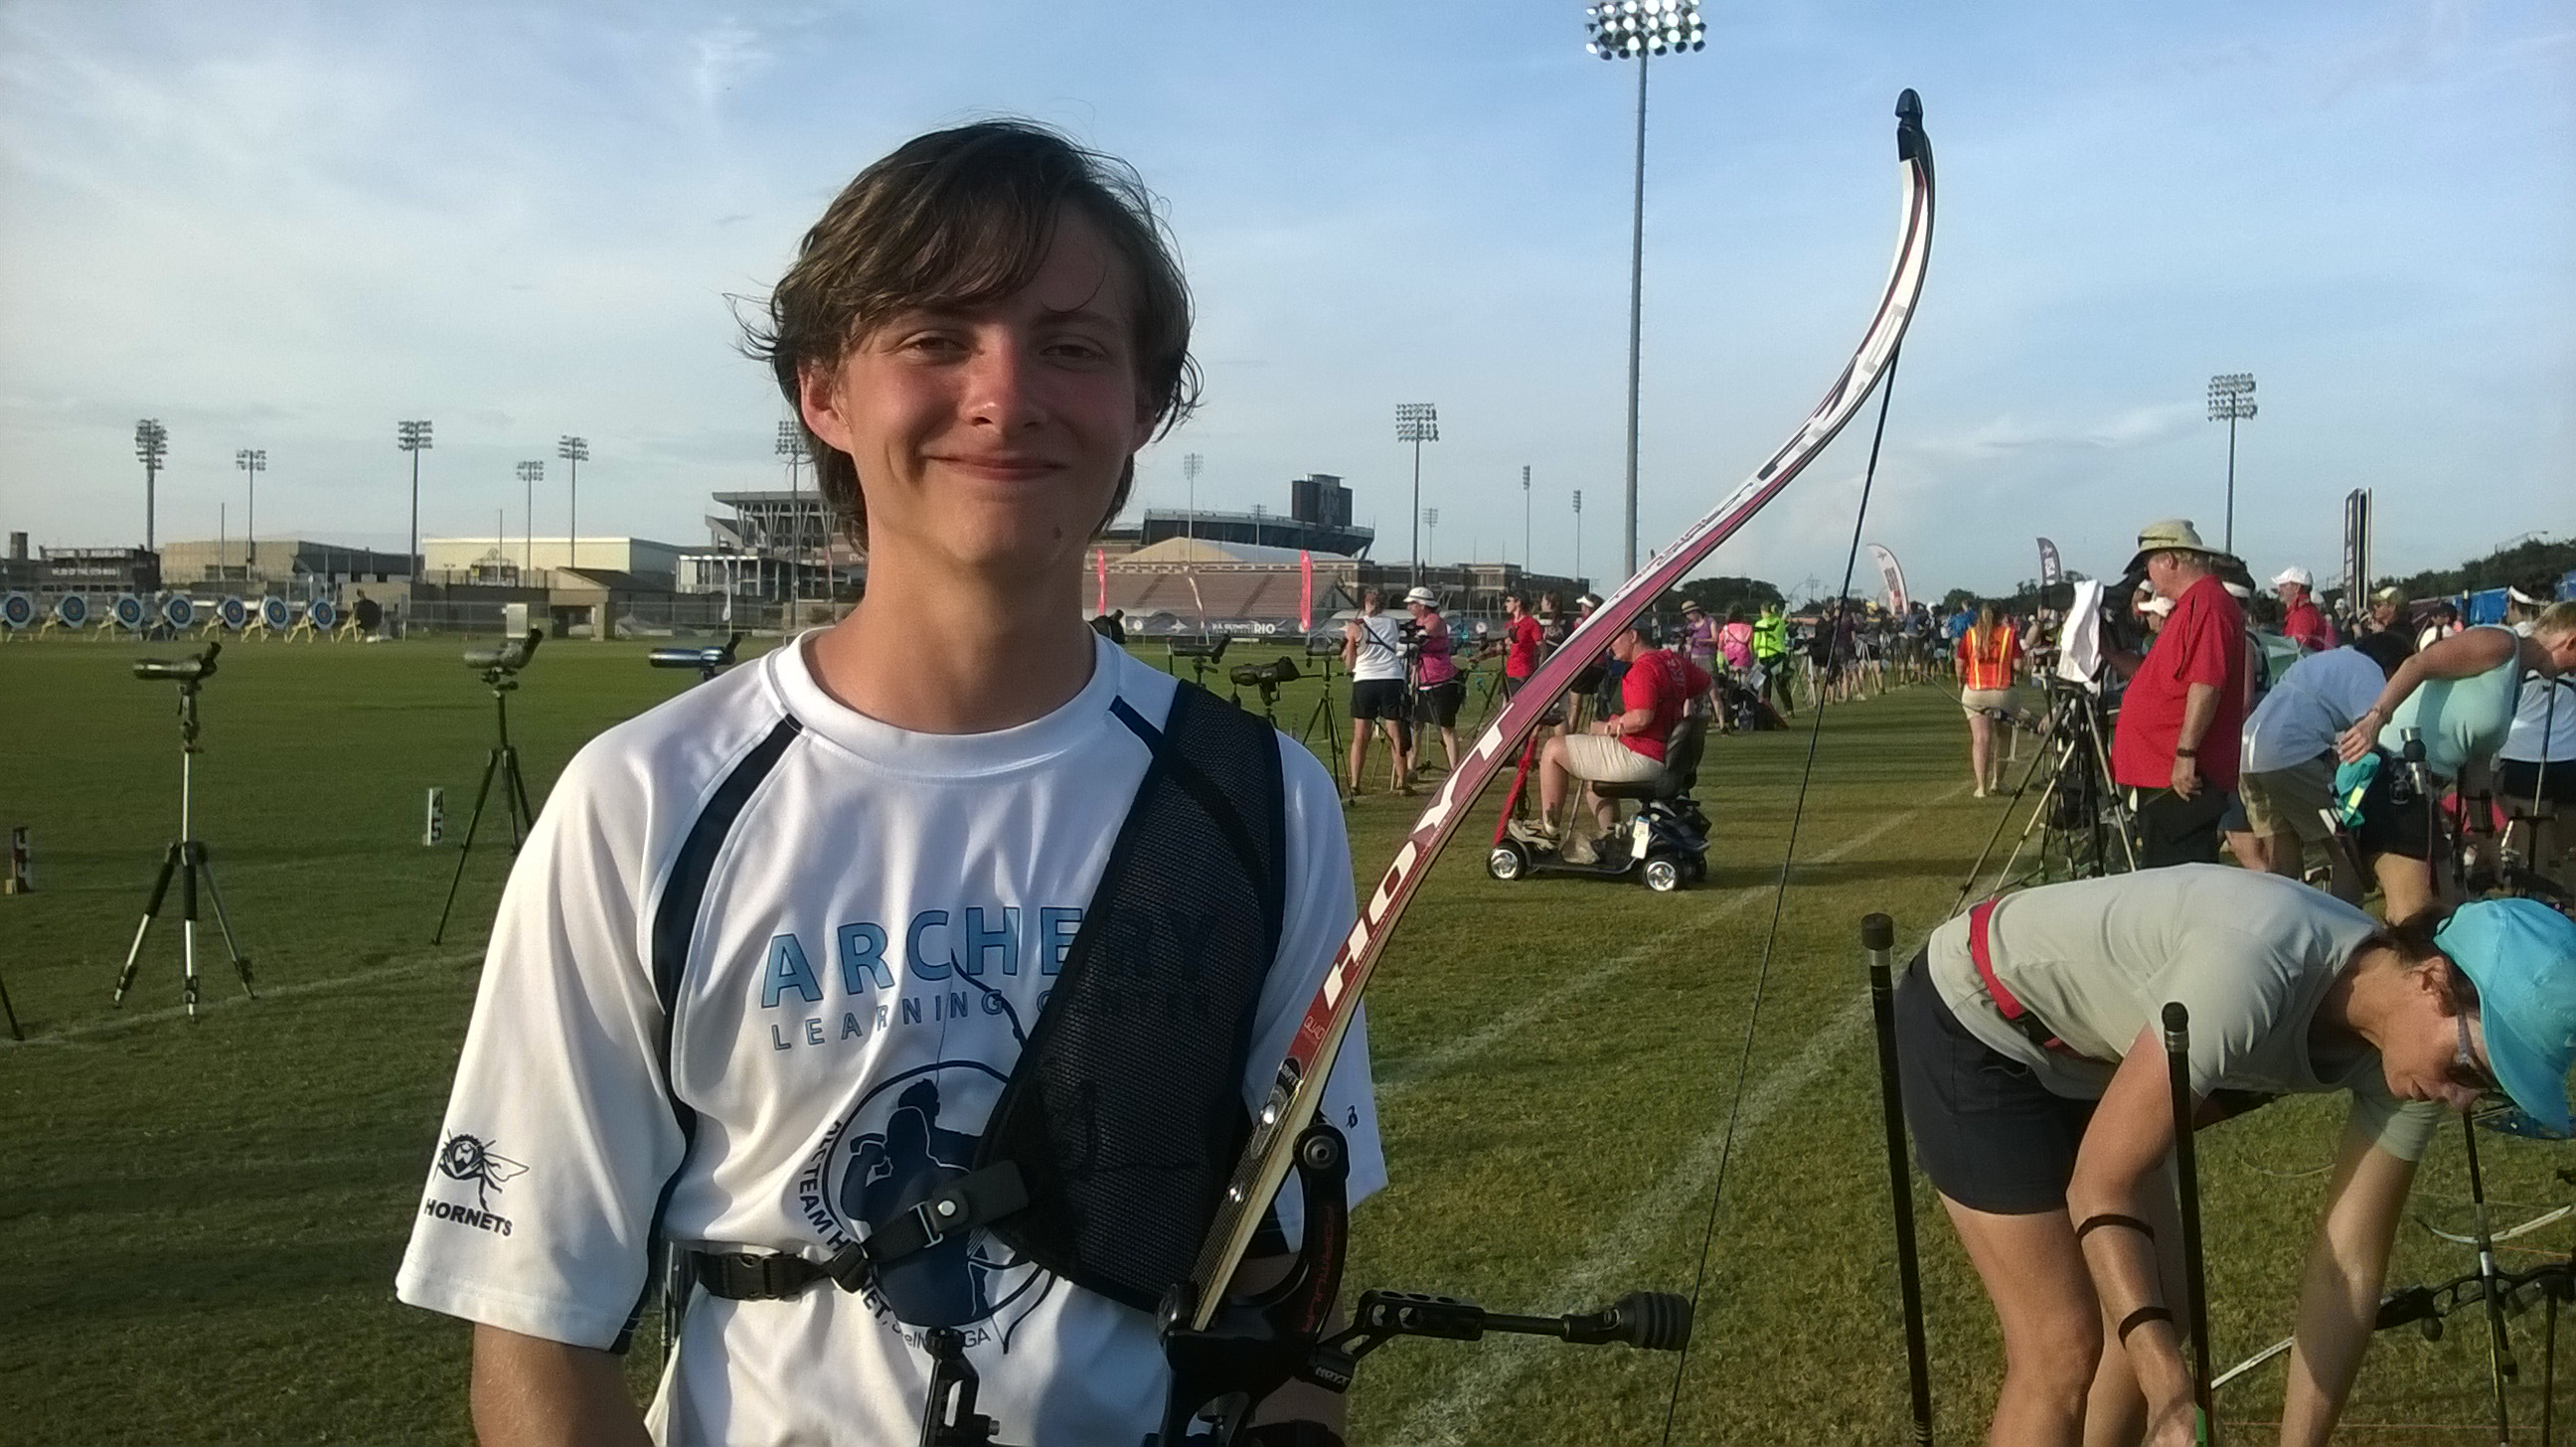 Anthony at the Olympic Archery Team Trials